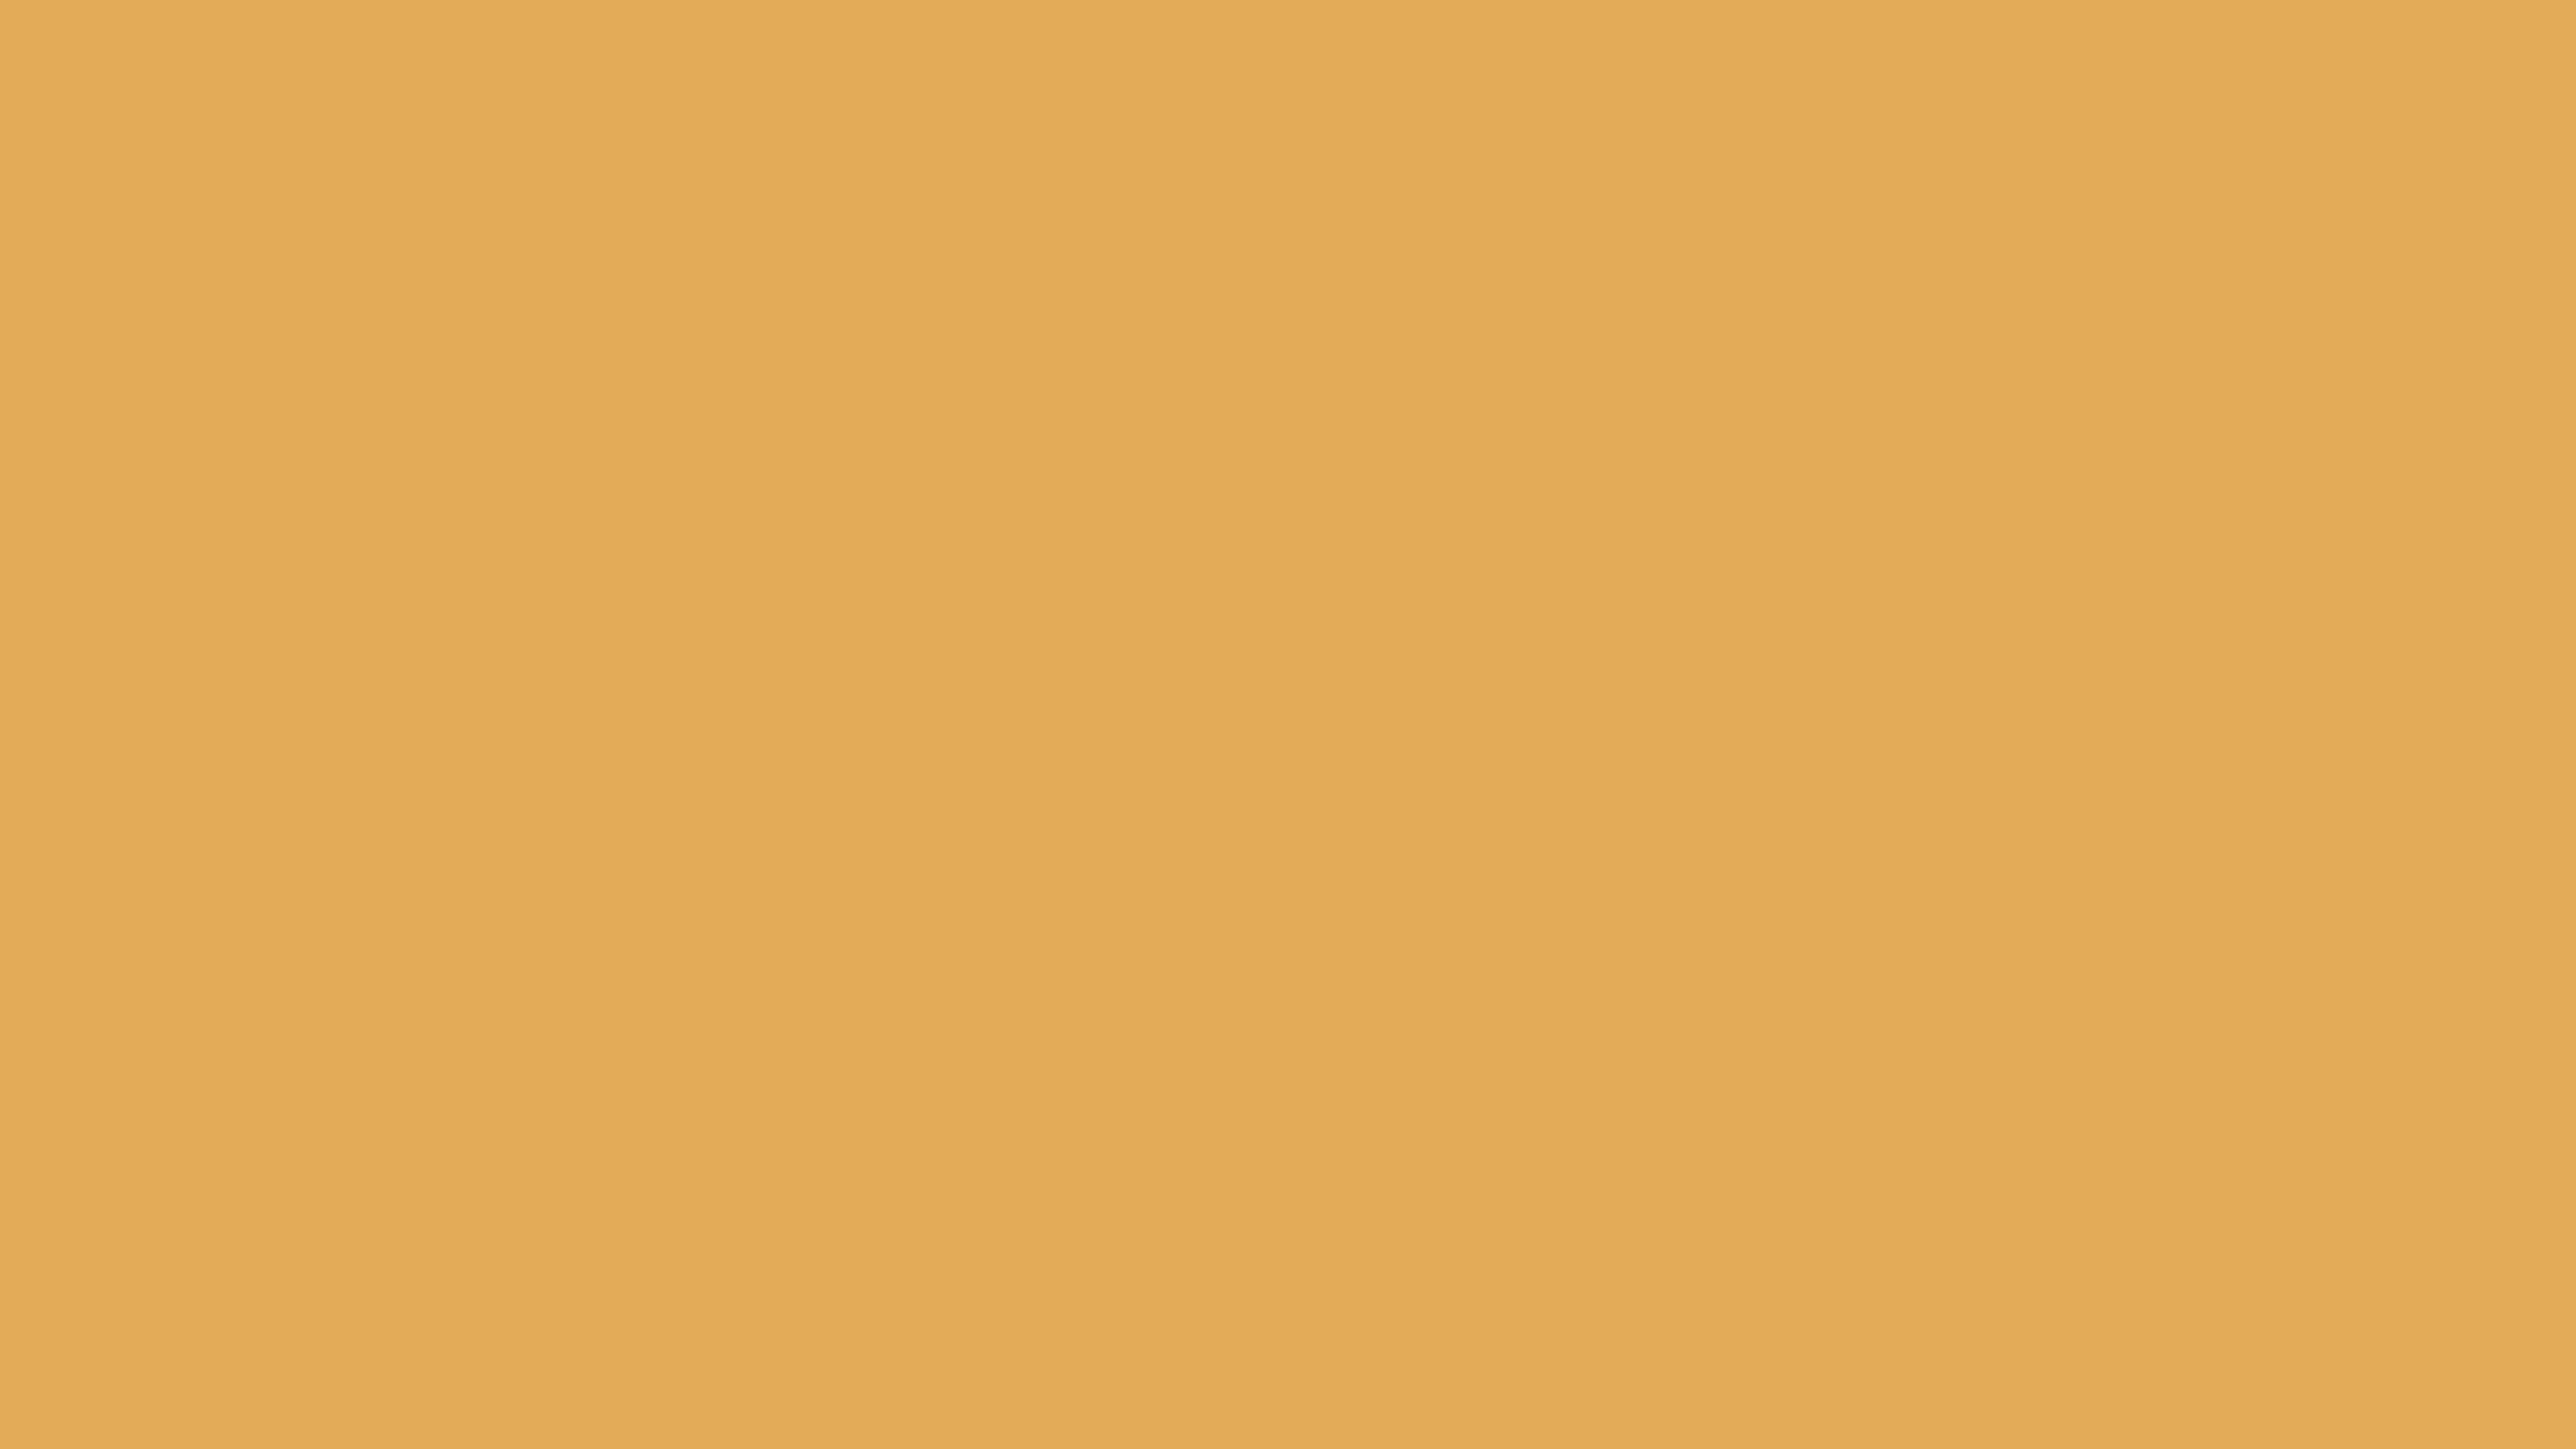 4096x2304 Sunray Solid Color Background